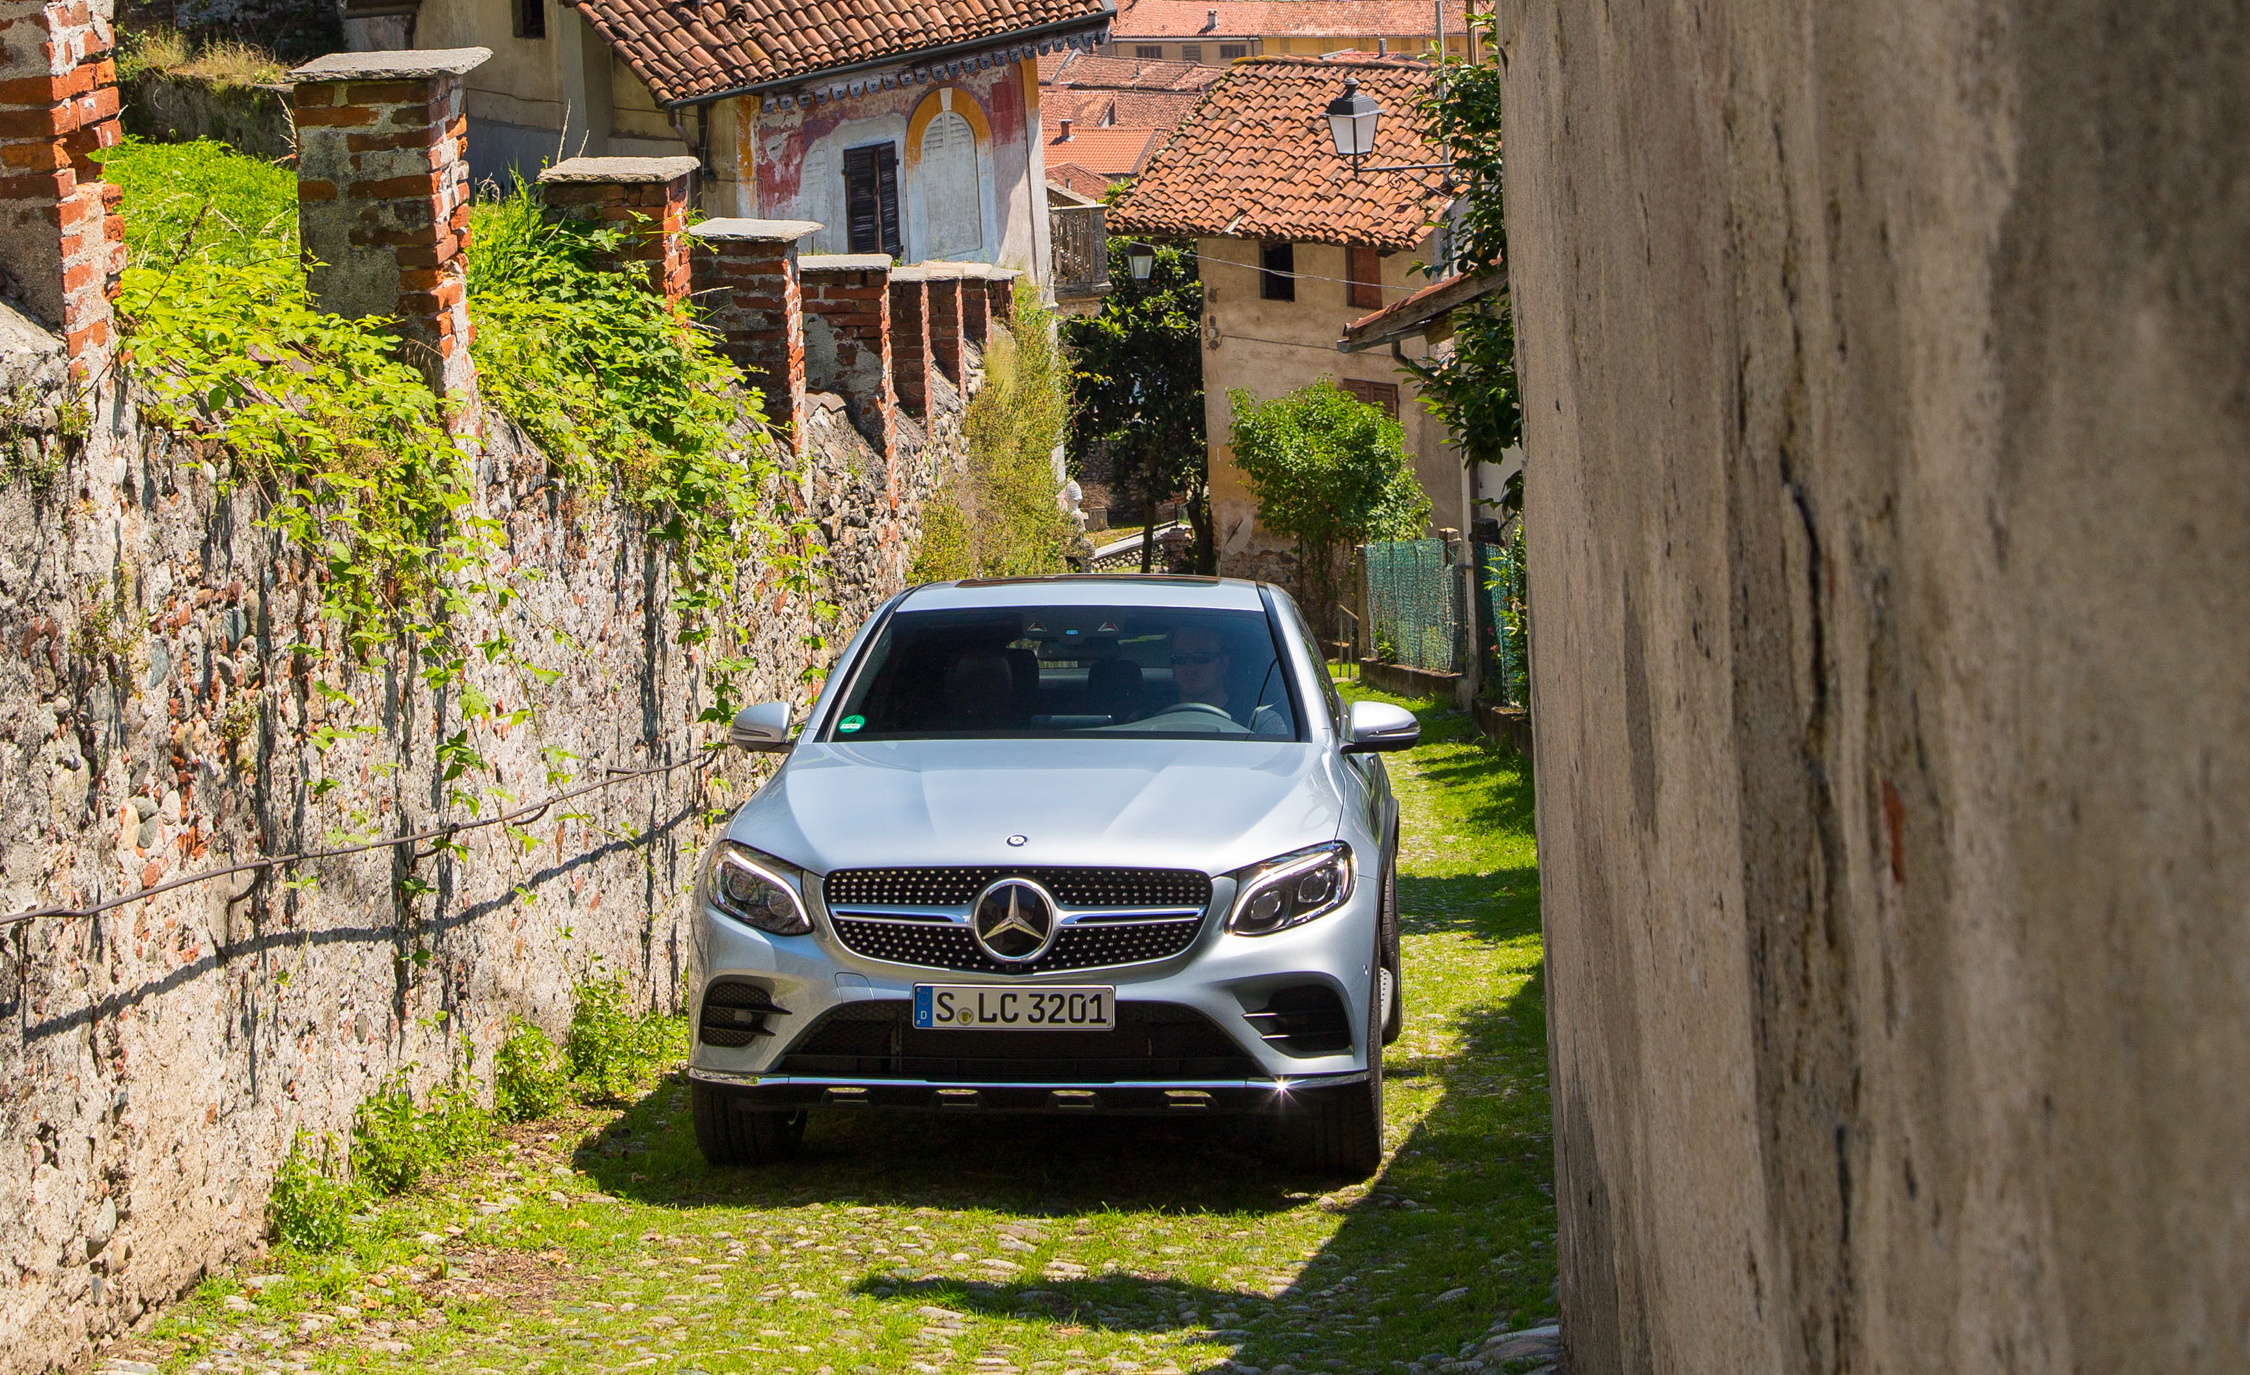 2017 Mercedes Benz GLC300 4MATIC Coupe (Photo 12 of 19)